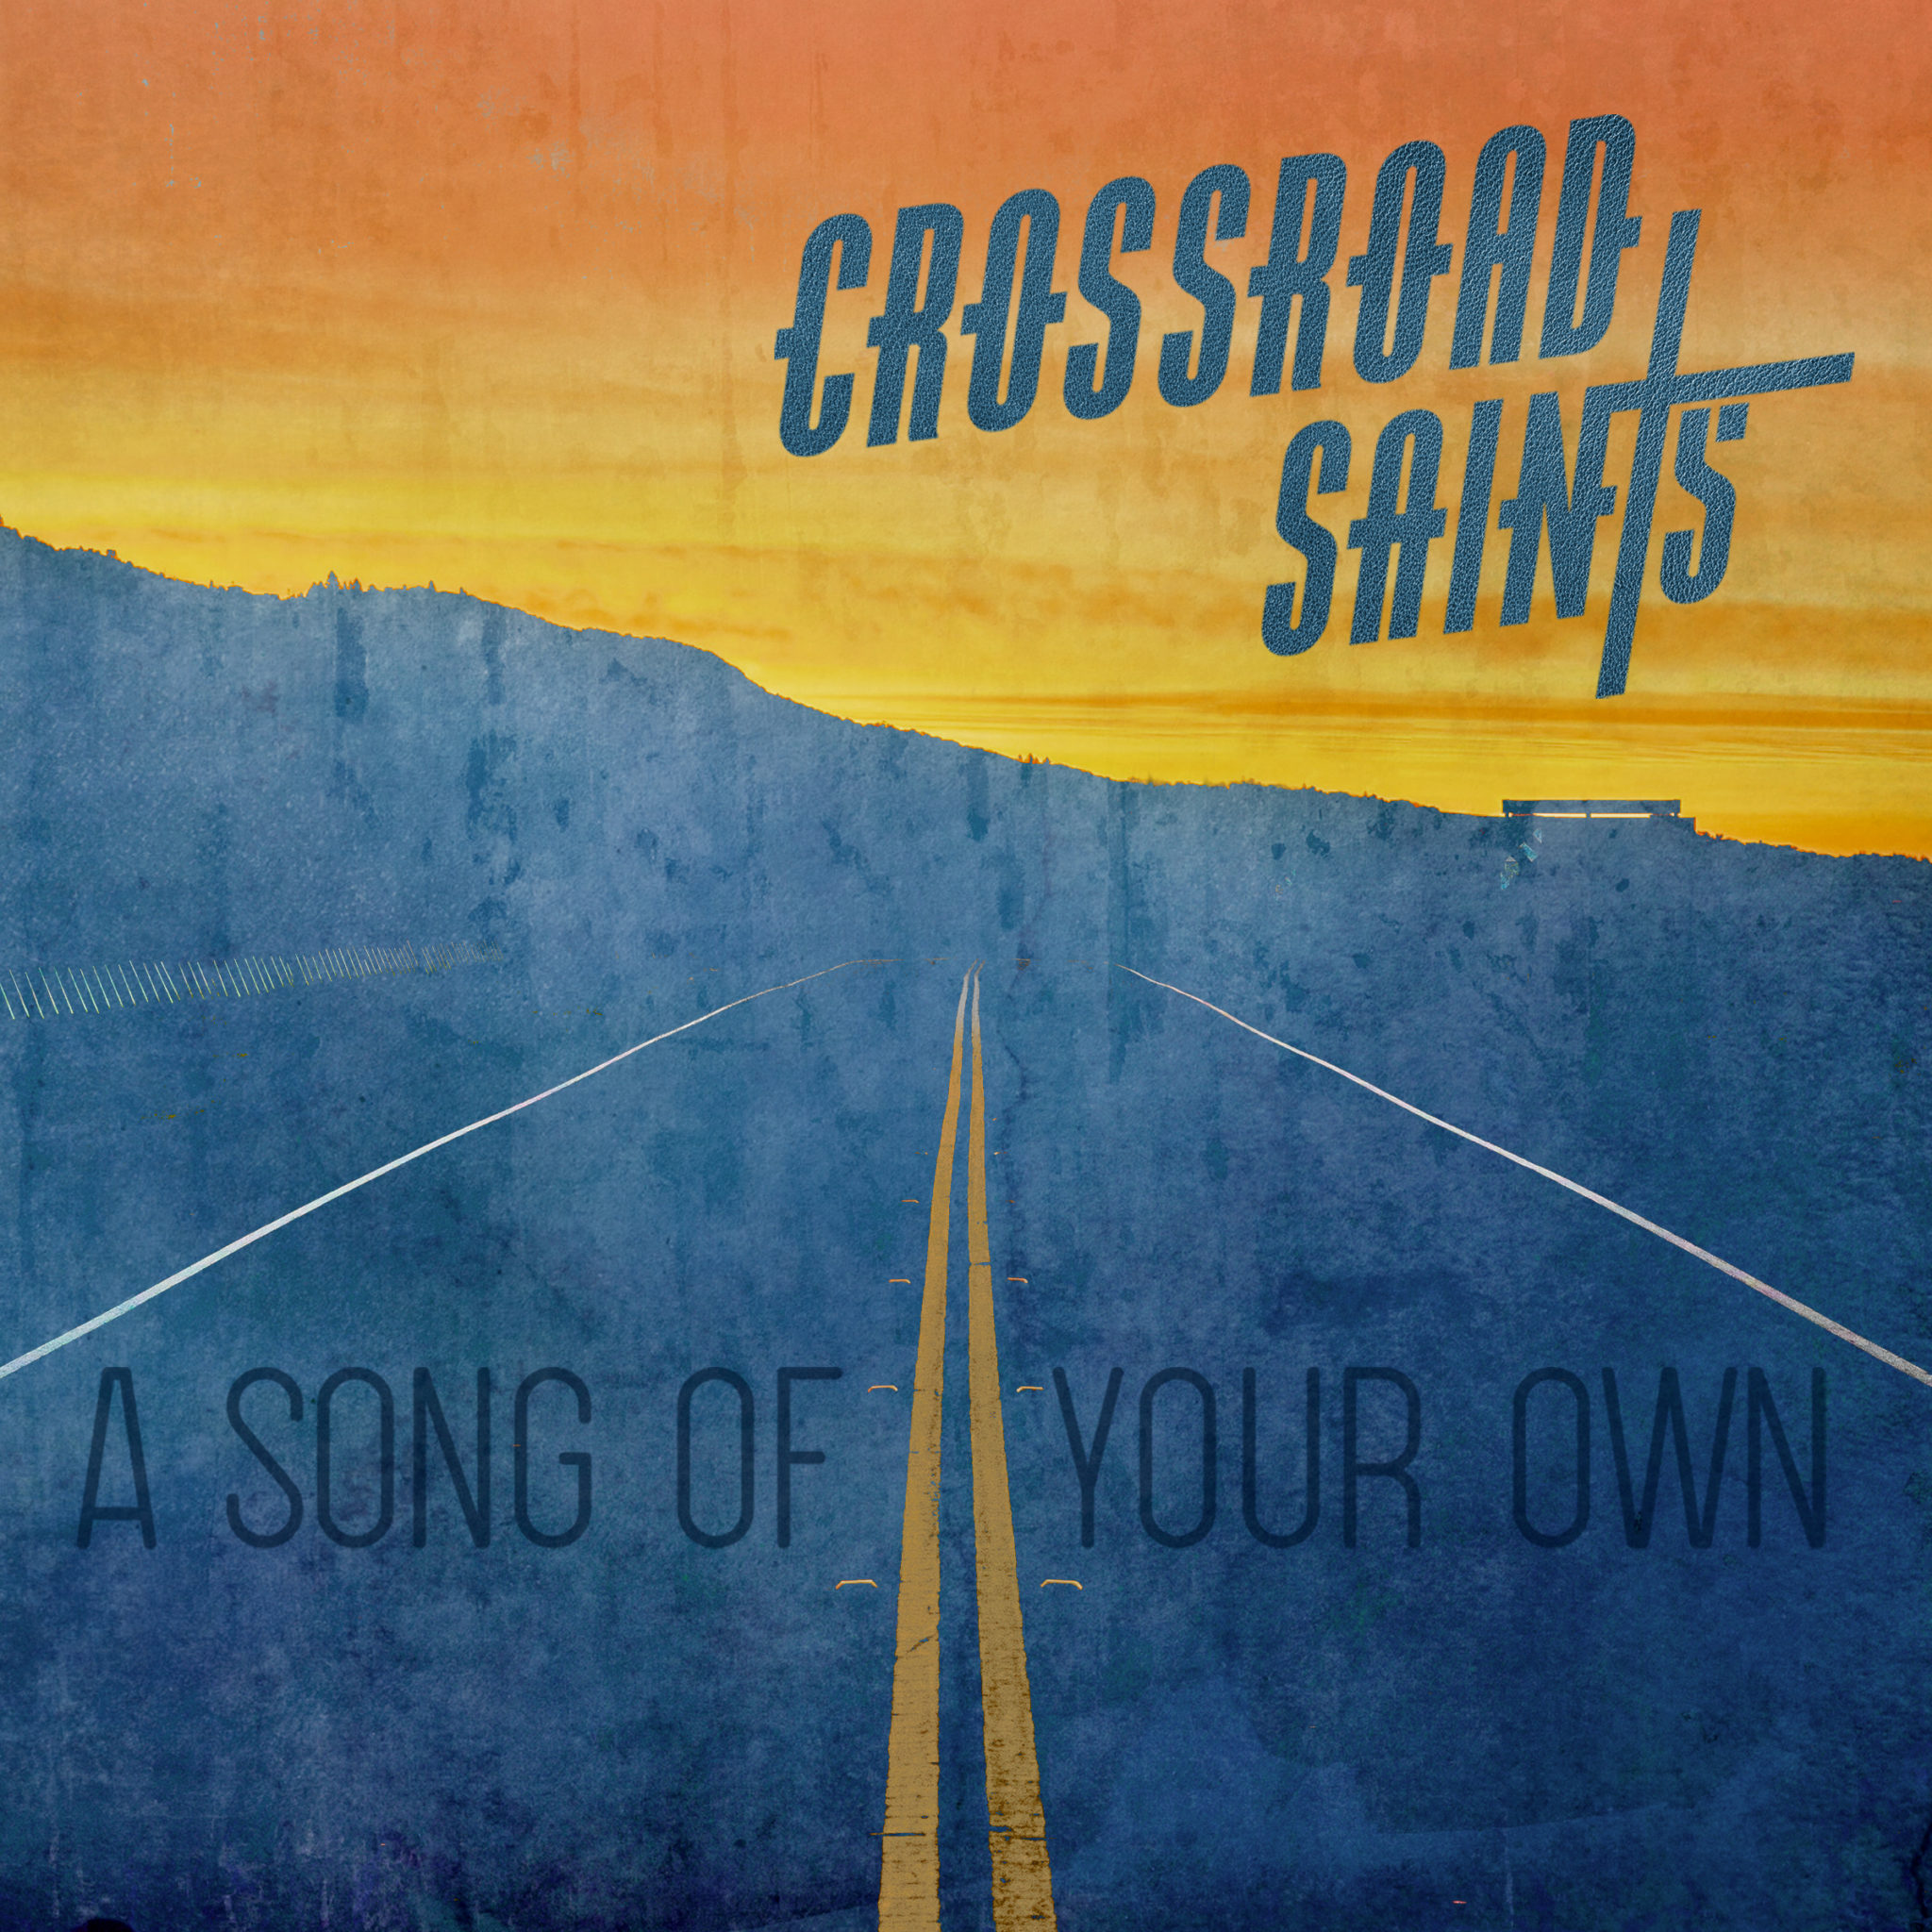 Crossroad Saints - 'A Song of Your Own' Reaction | Opinions | LIVING LIFE FEARLESS